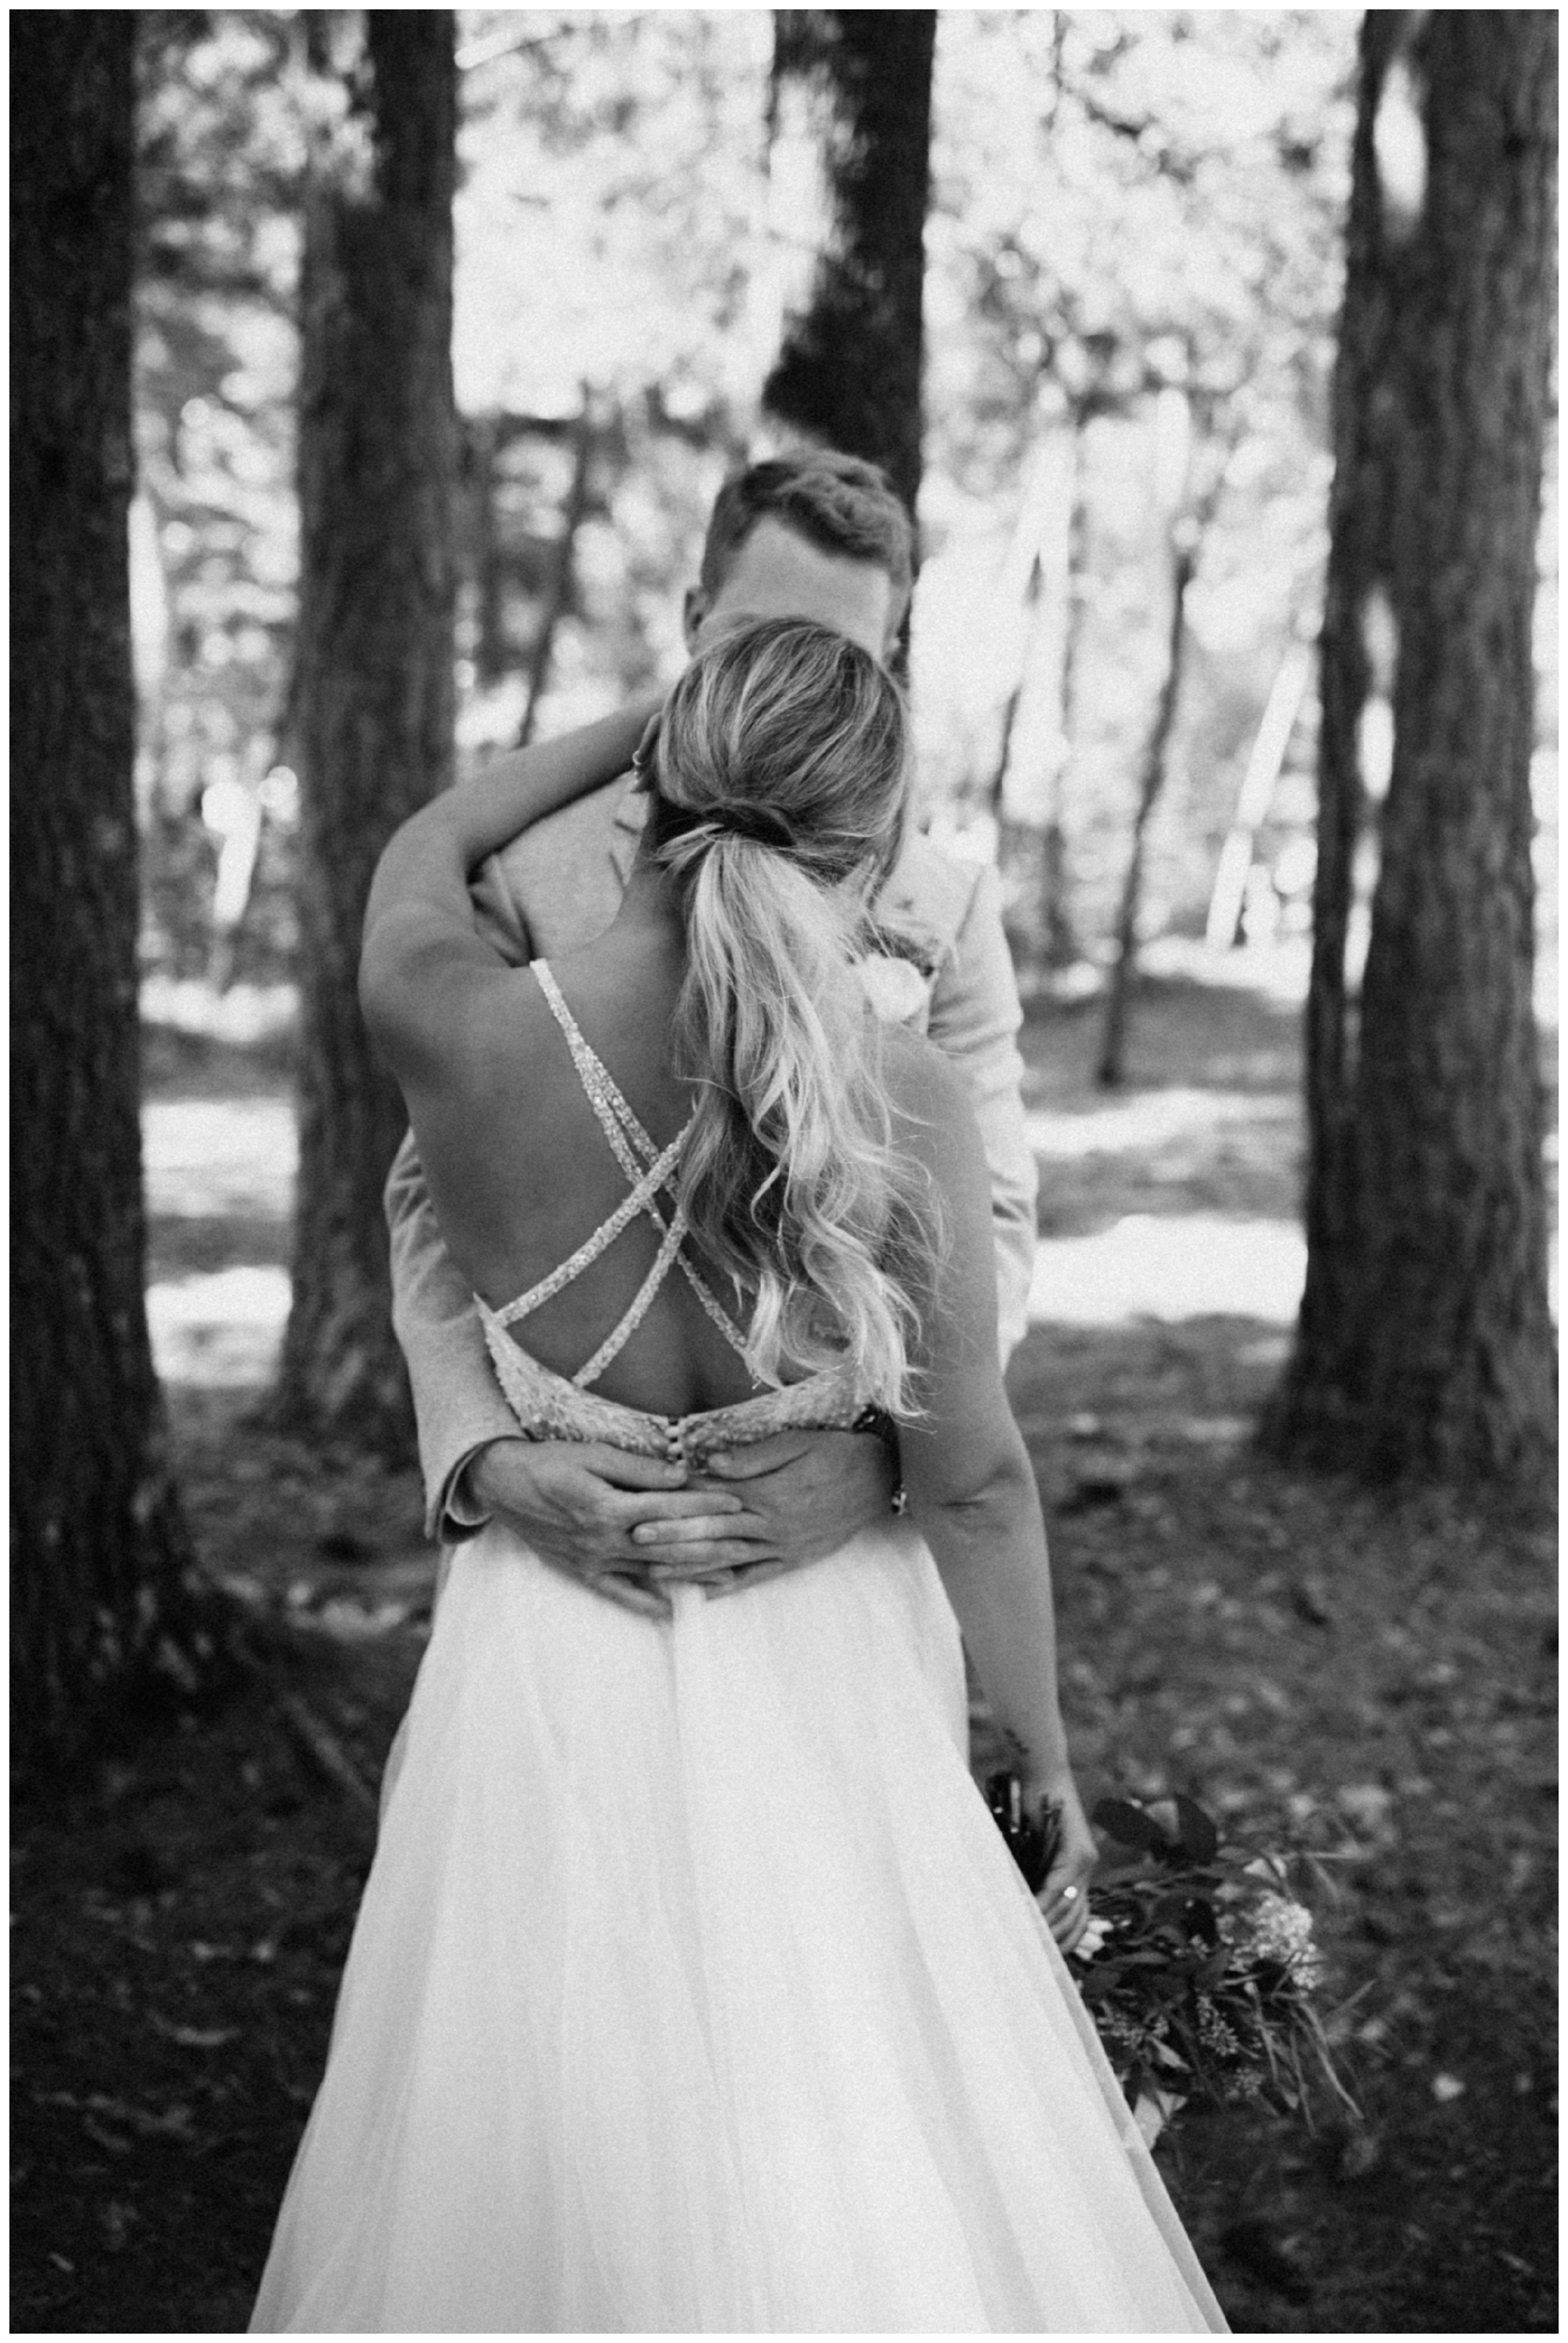 Romantic wedding at Camp Foley on the Whitefish Chain, photographed by Britt DeZeeuw